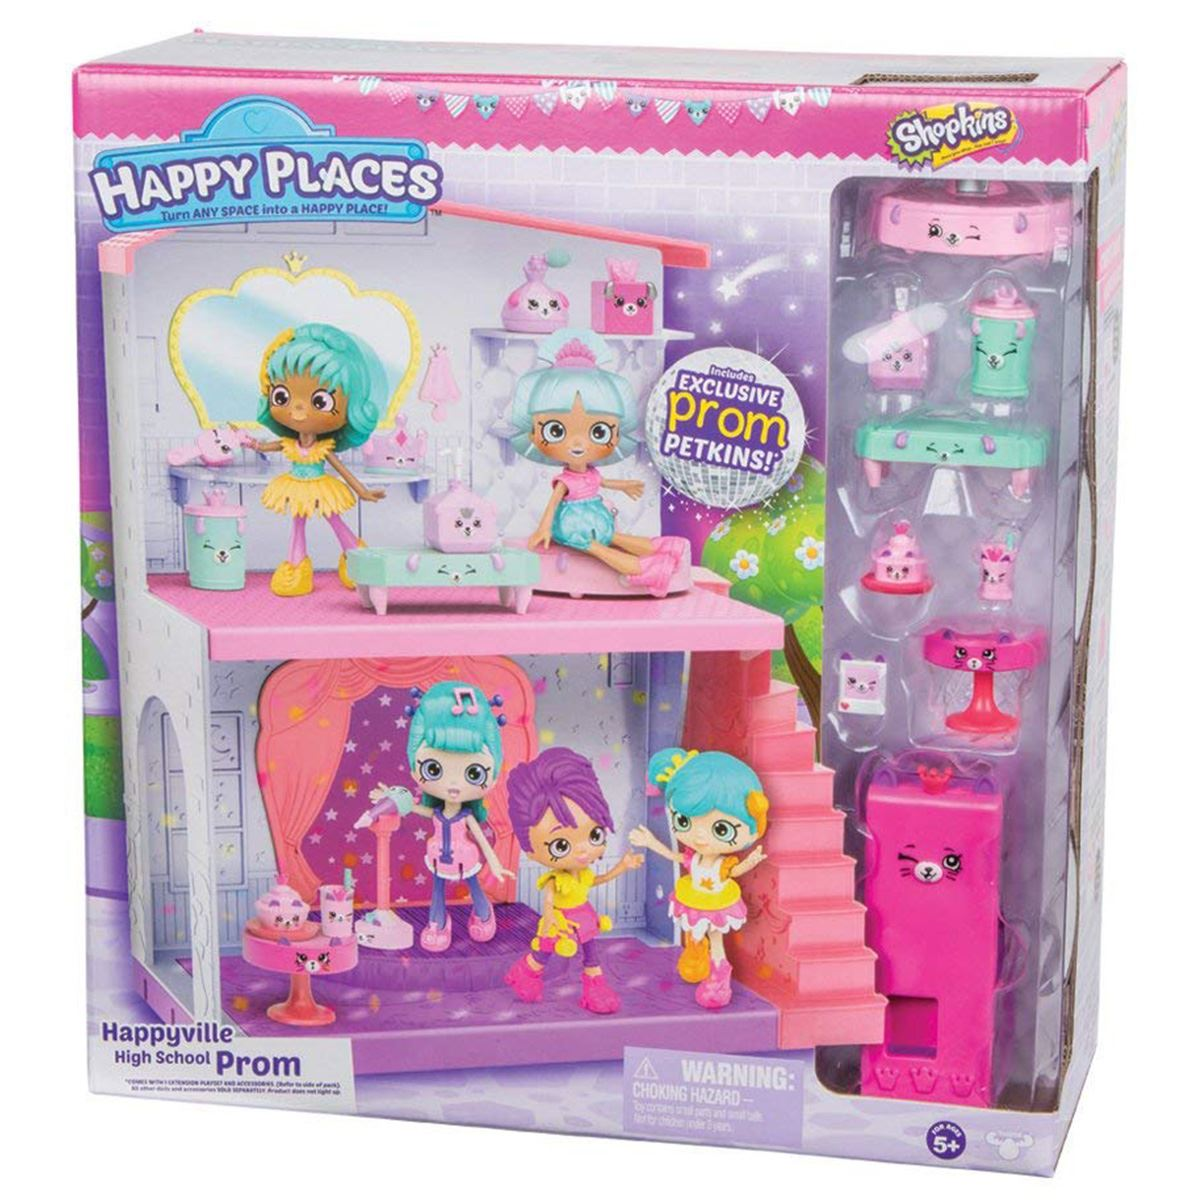 Details about Shopkins Happy Places Happyville High School Prom Playset Toy  House For Ages 5+